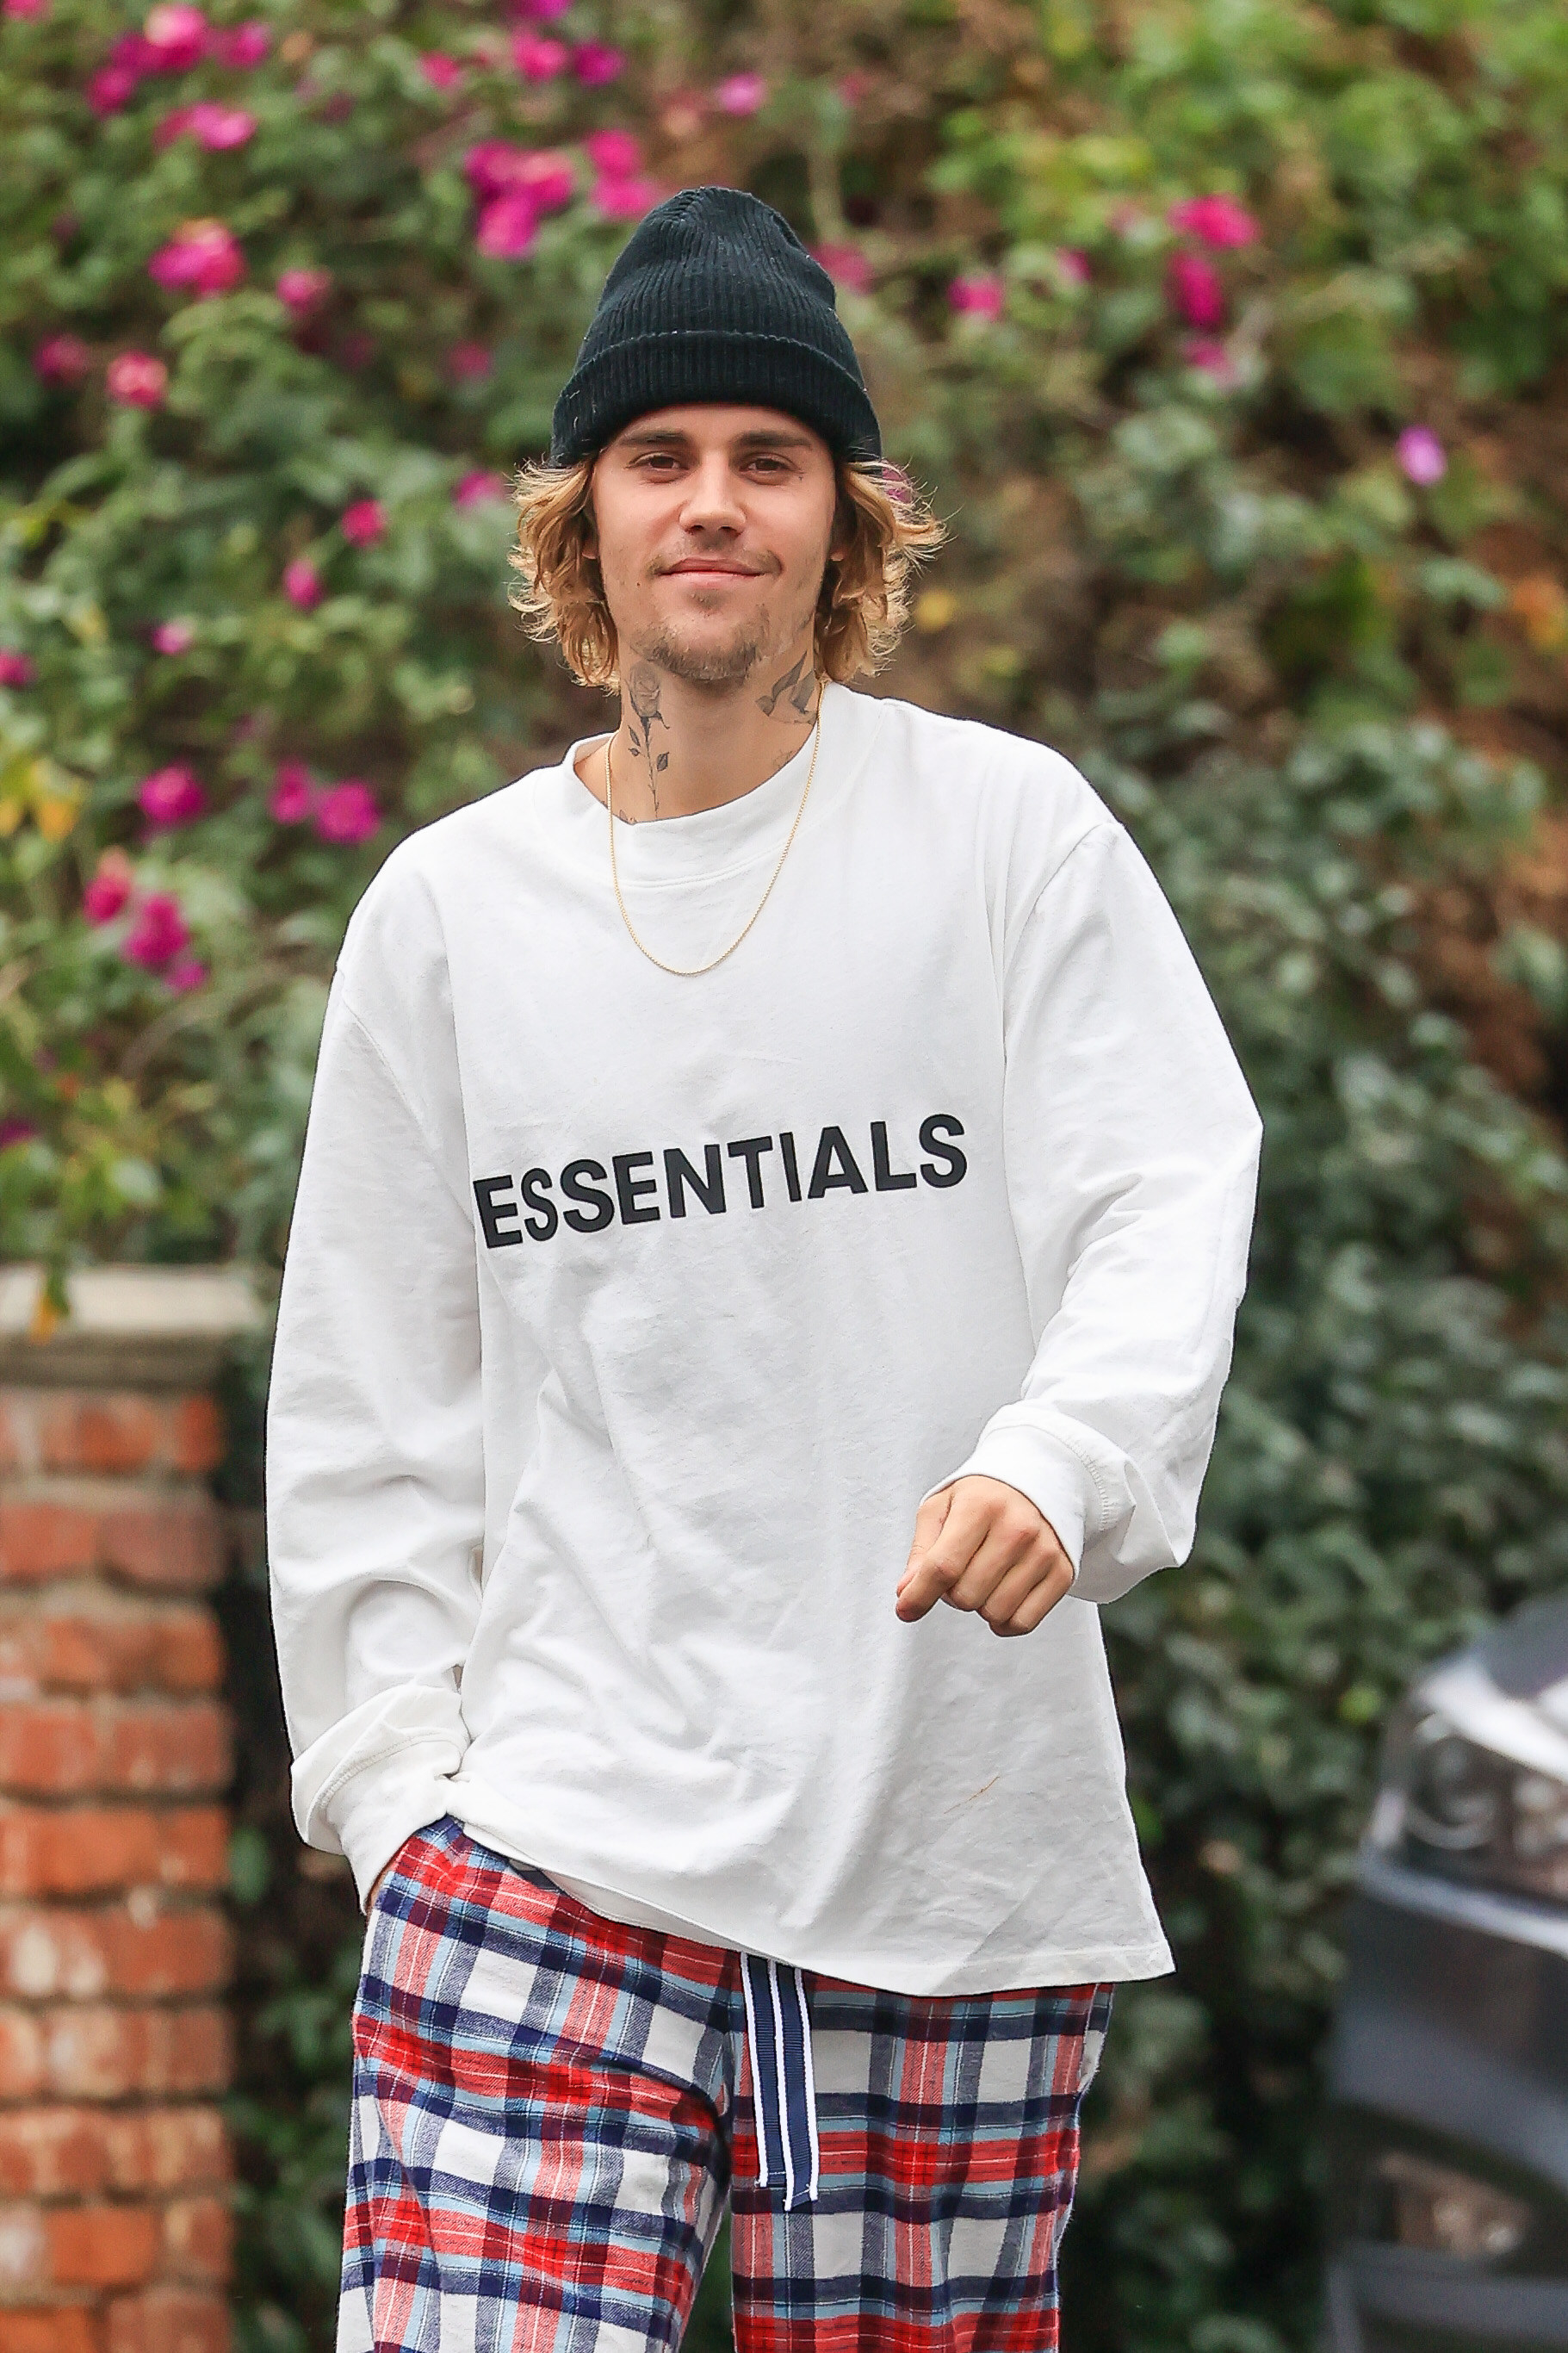 A smiling Justin outside wearing an Essentials shirt, a hat, and checkered pants